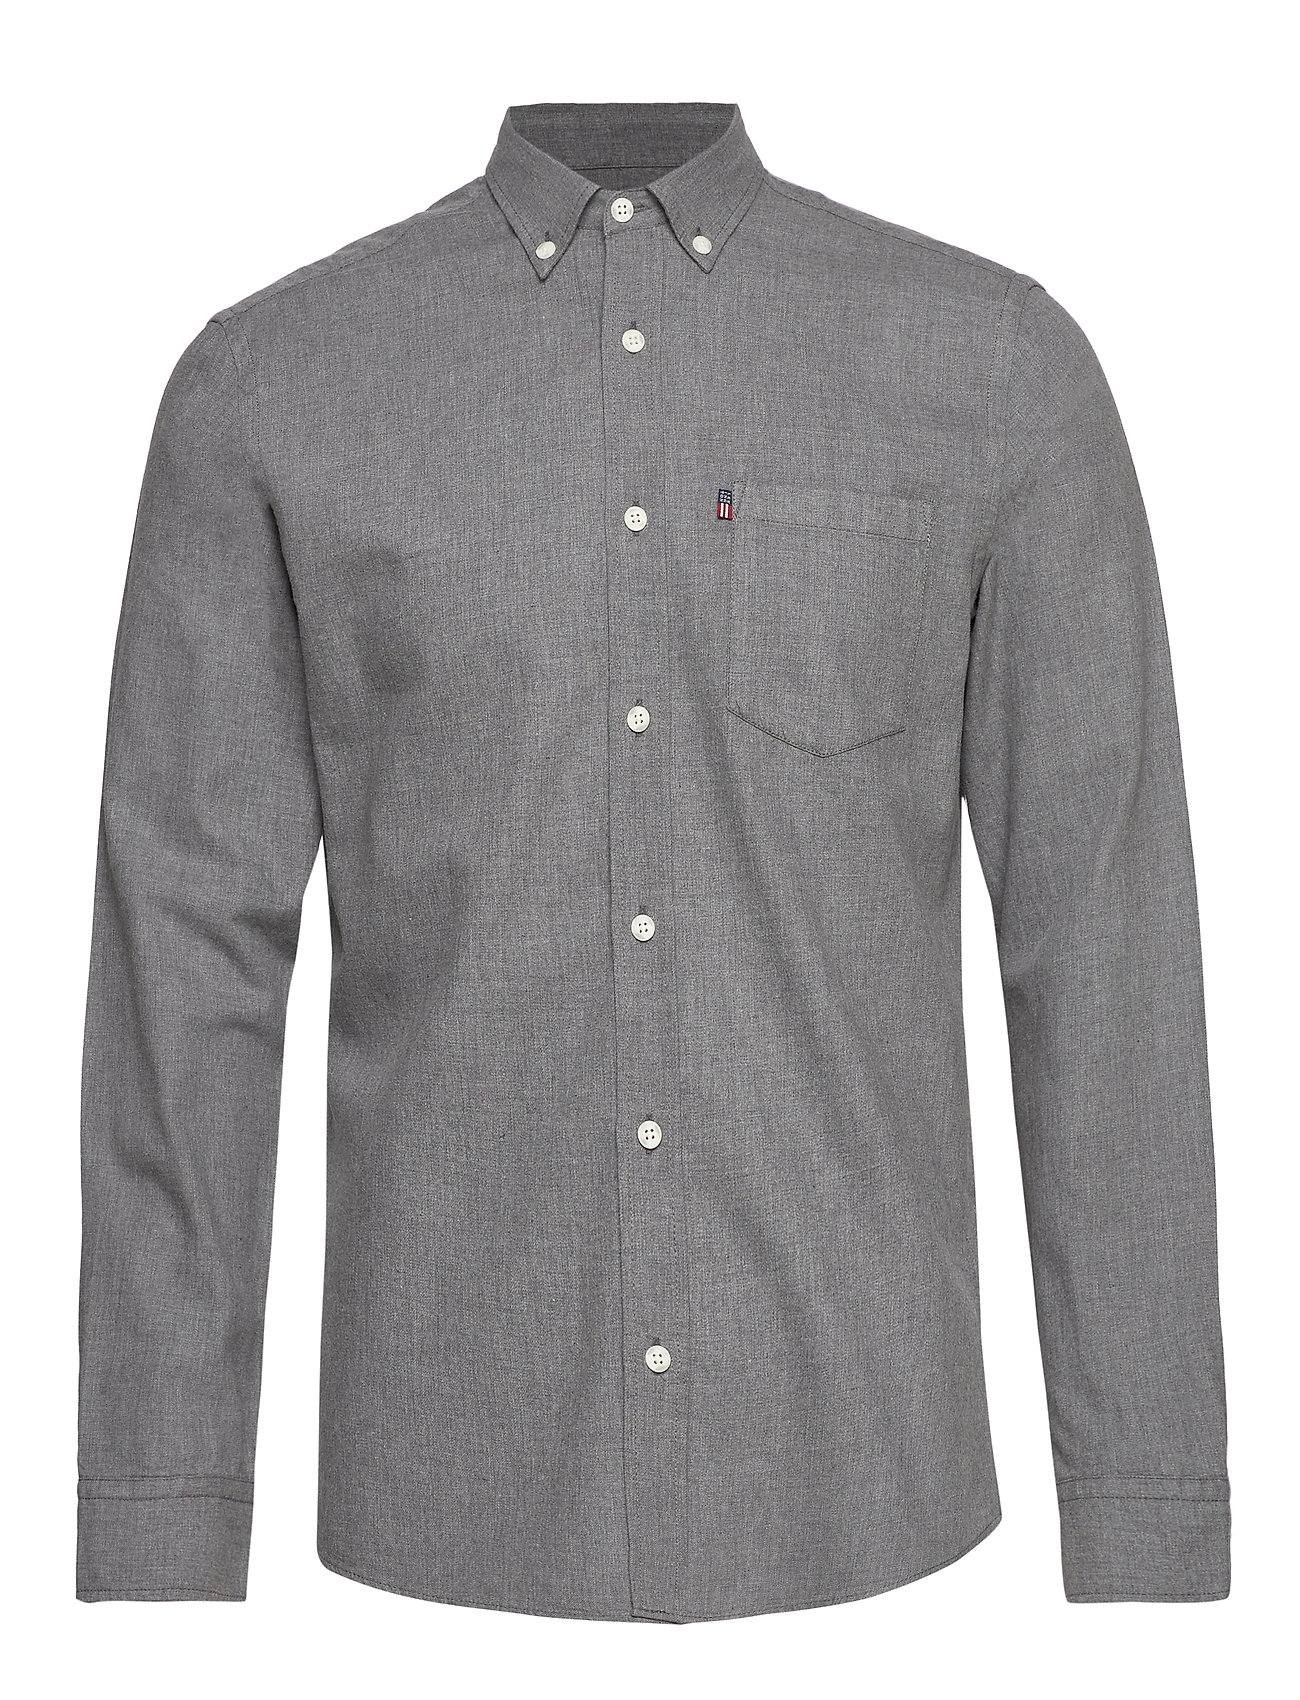 Lexington Clothing Peter Lt Flannel Shirt - GRAY MELANGE